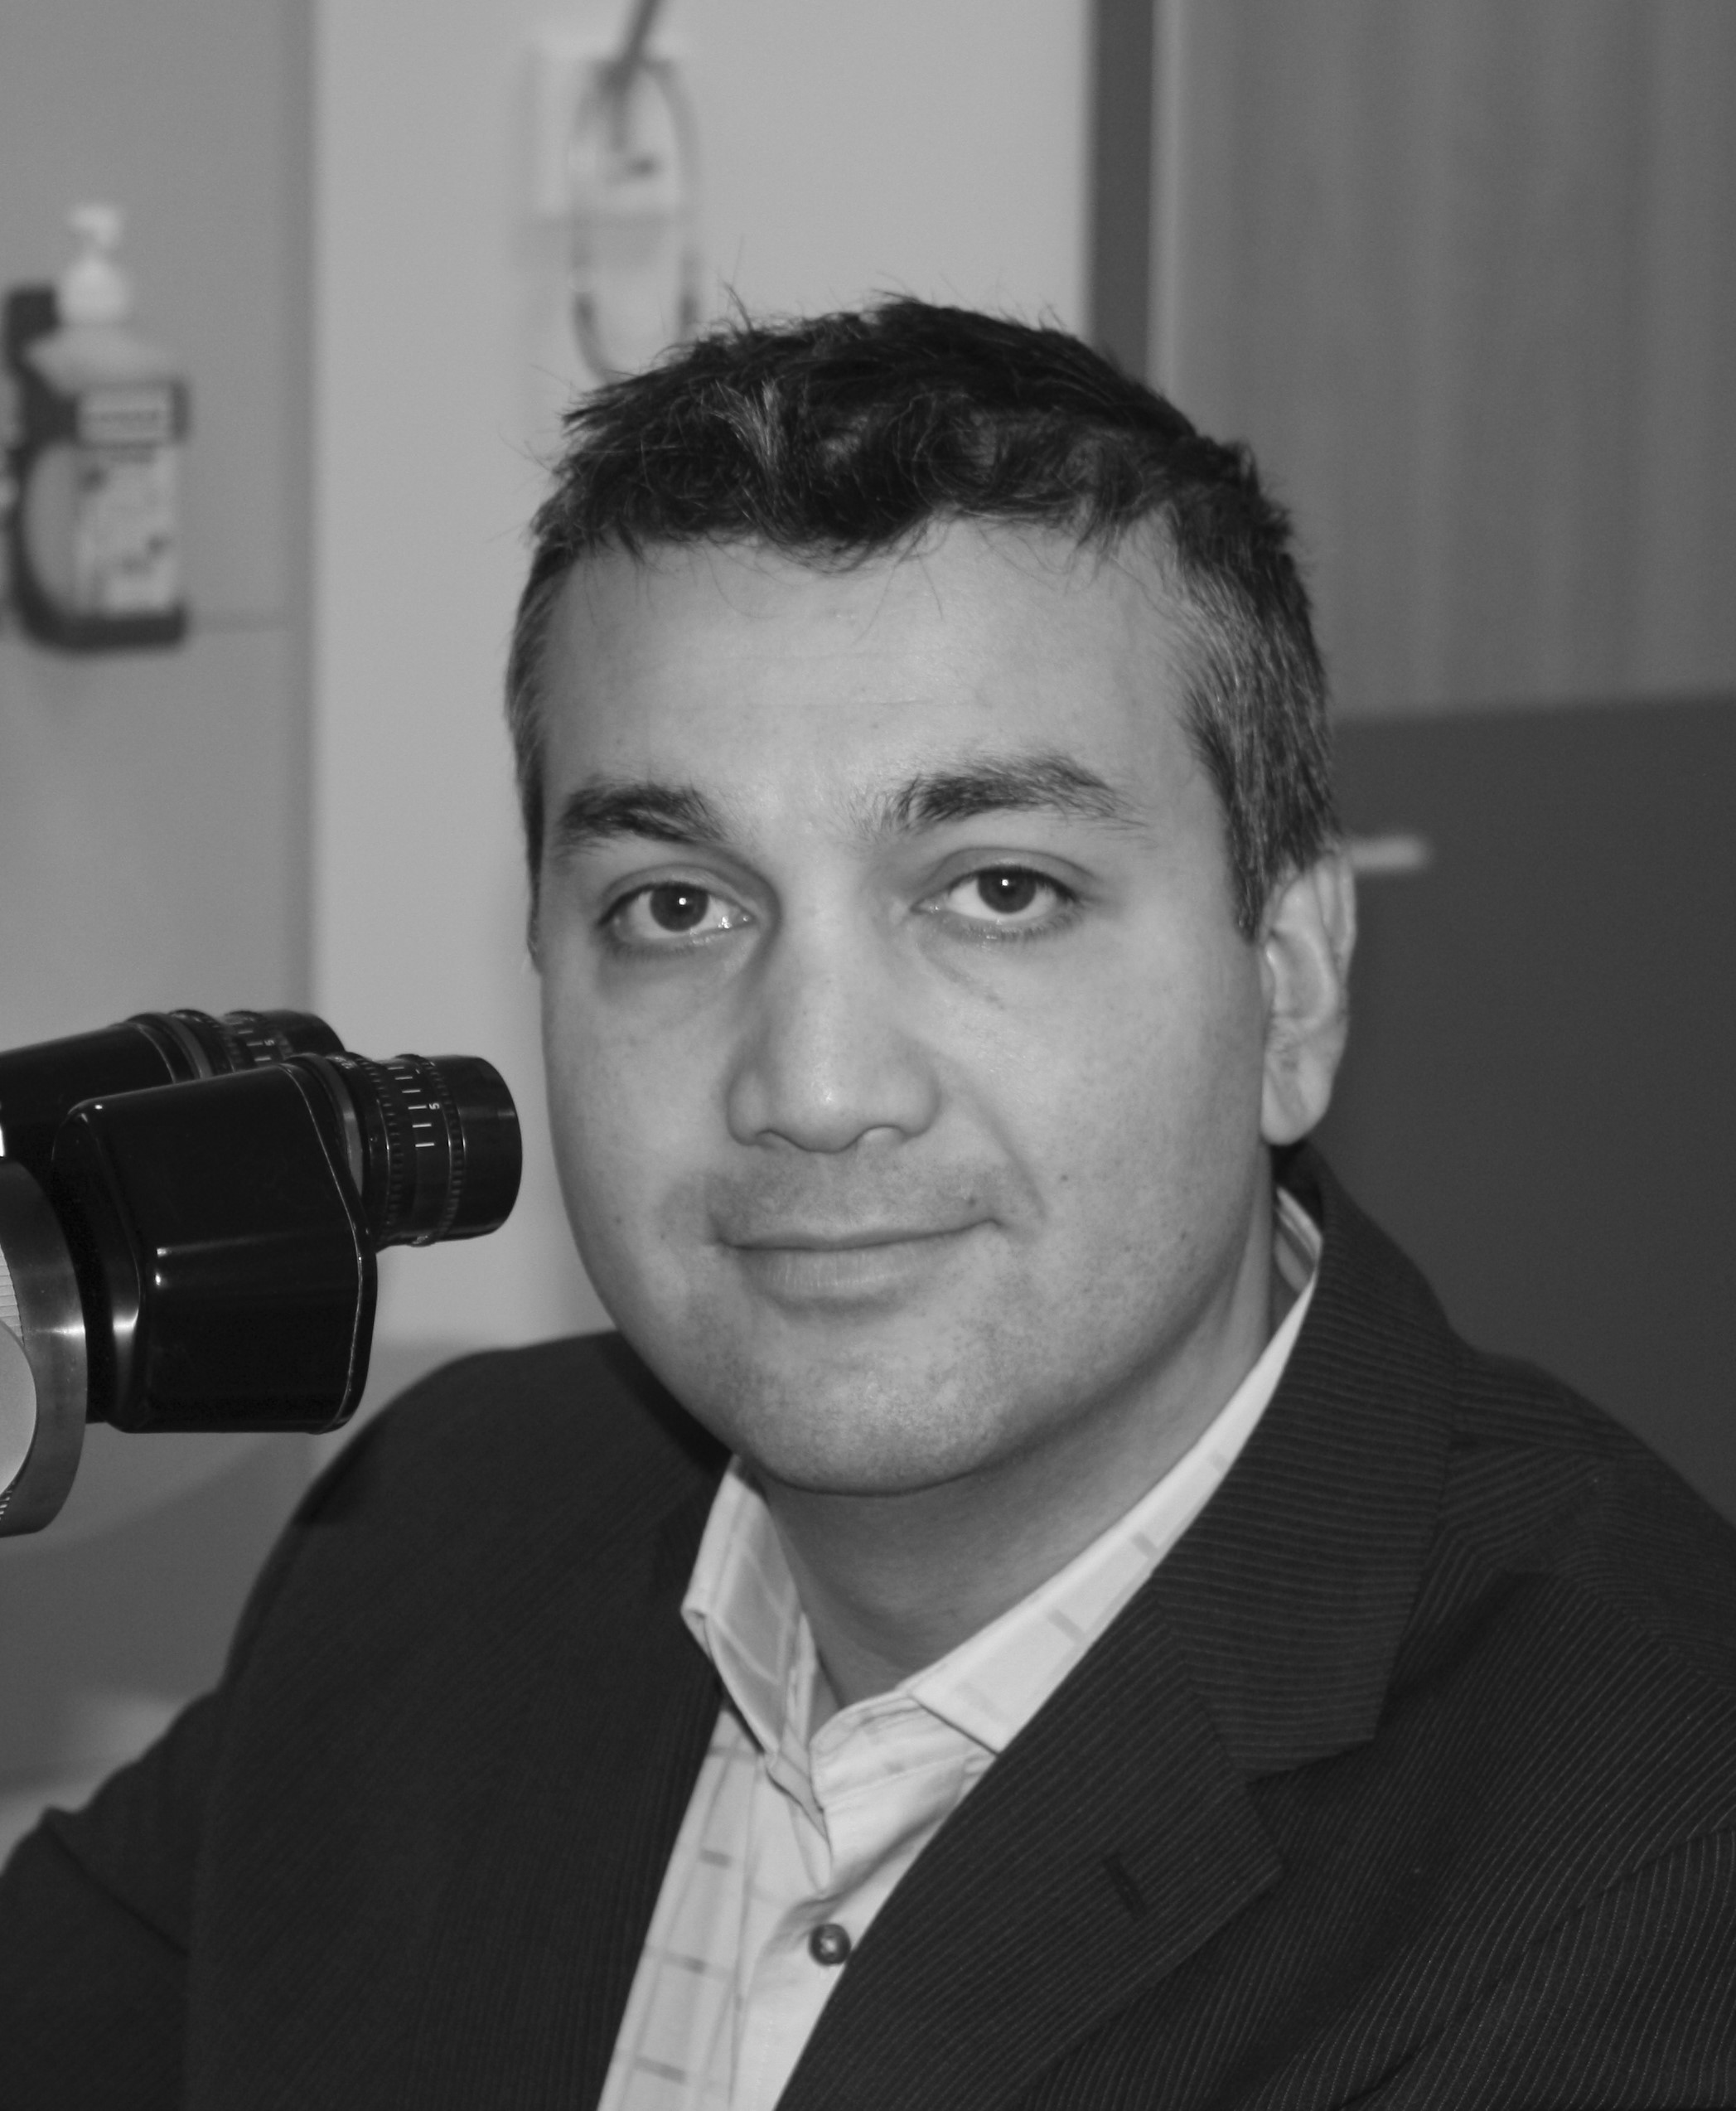 Amar Alwitry is a Consultant Ophthalmologist at Circle Nottingham